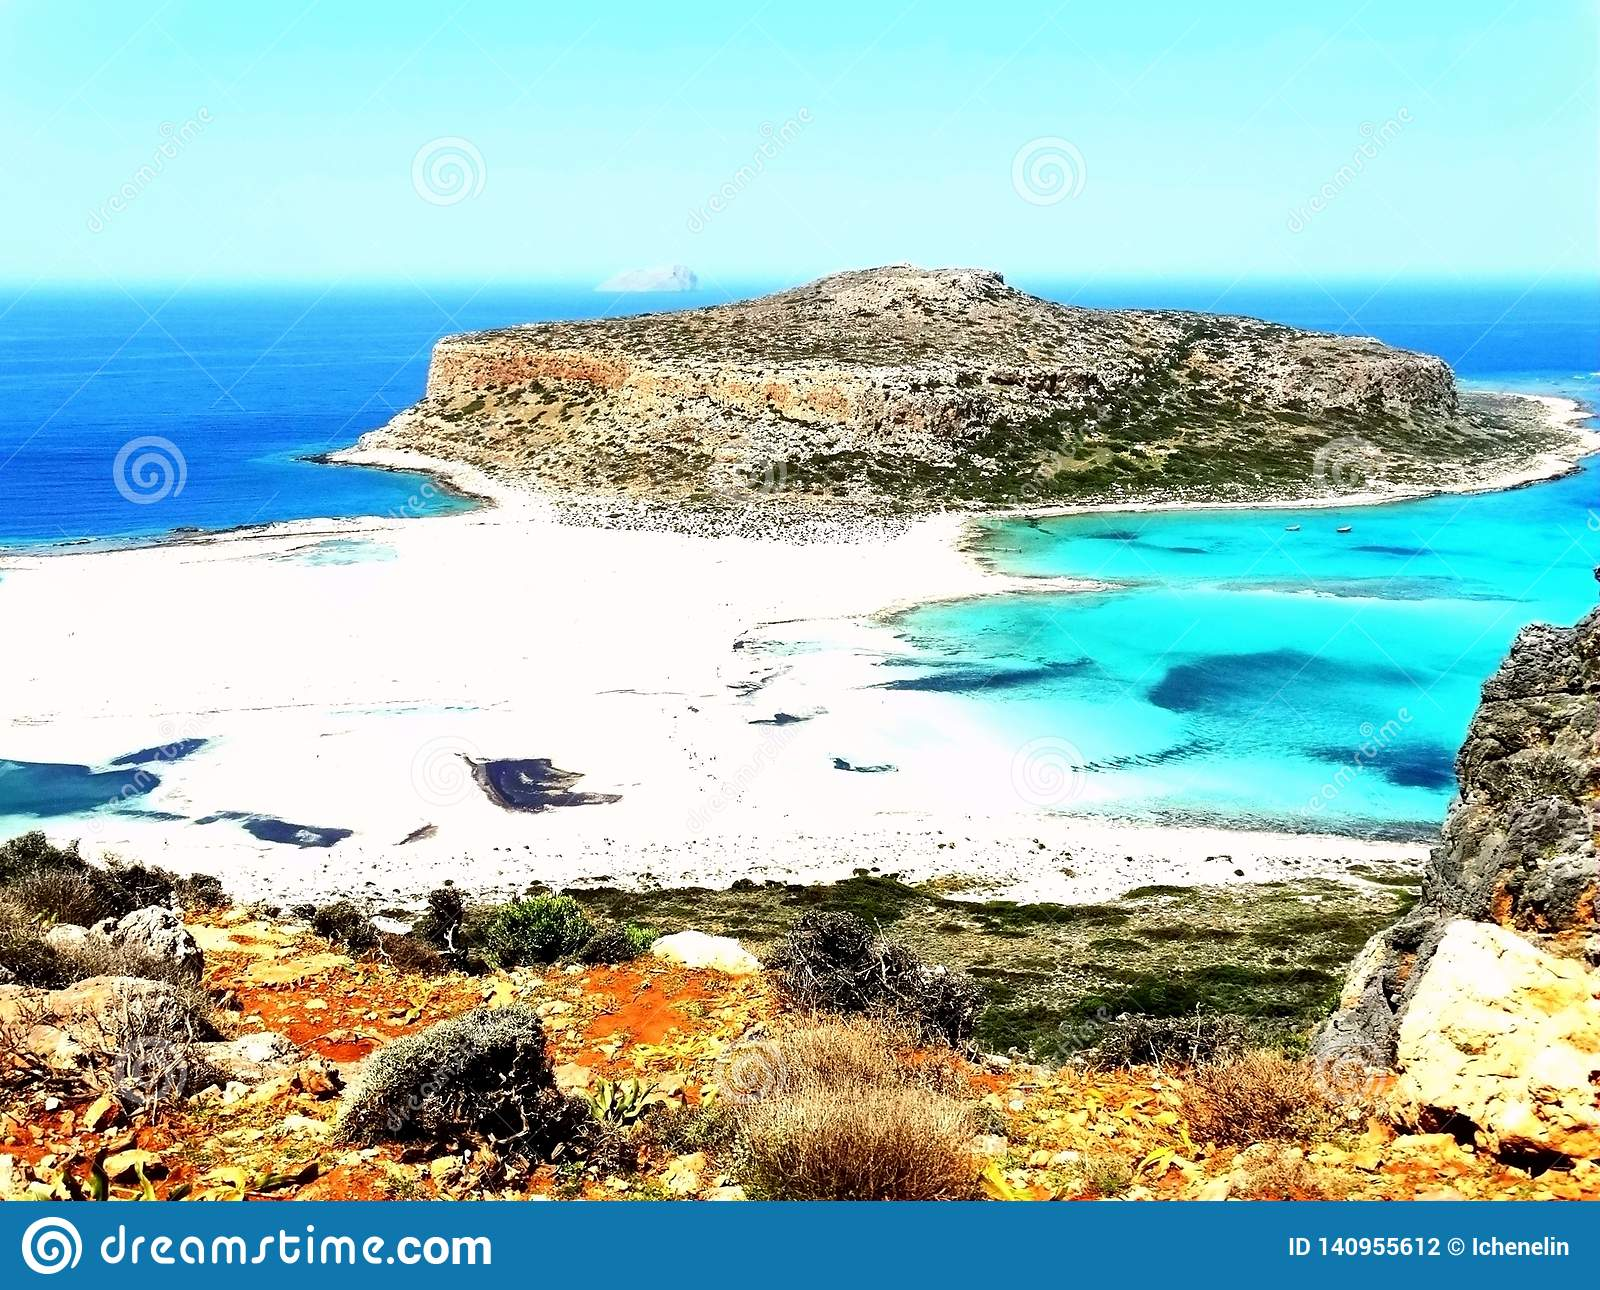 Stunning pink-blue beach and hiking landscape in Balos, Crete, Greece.